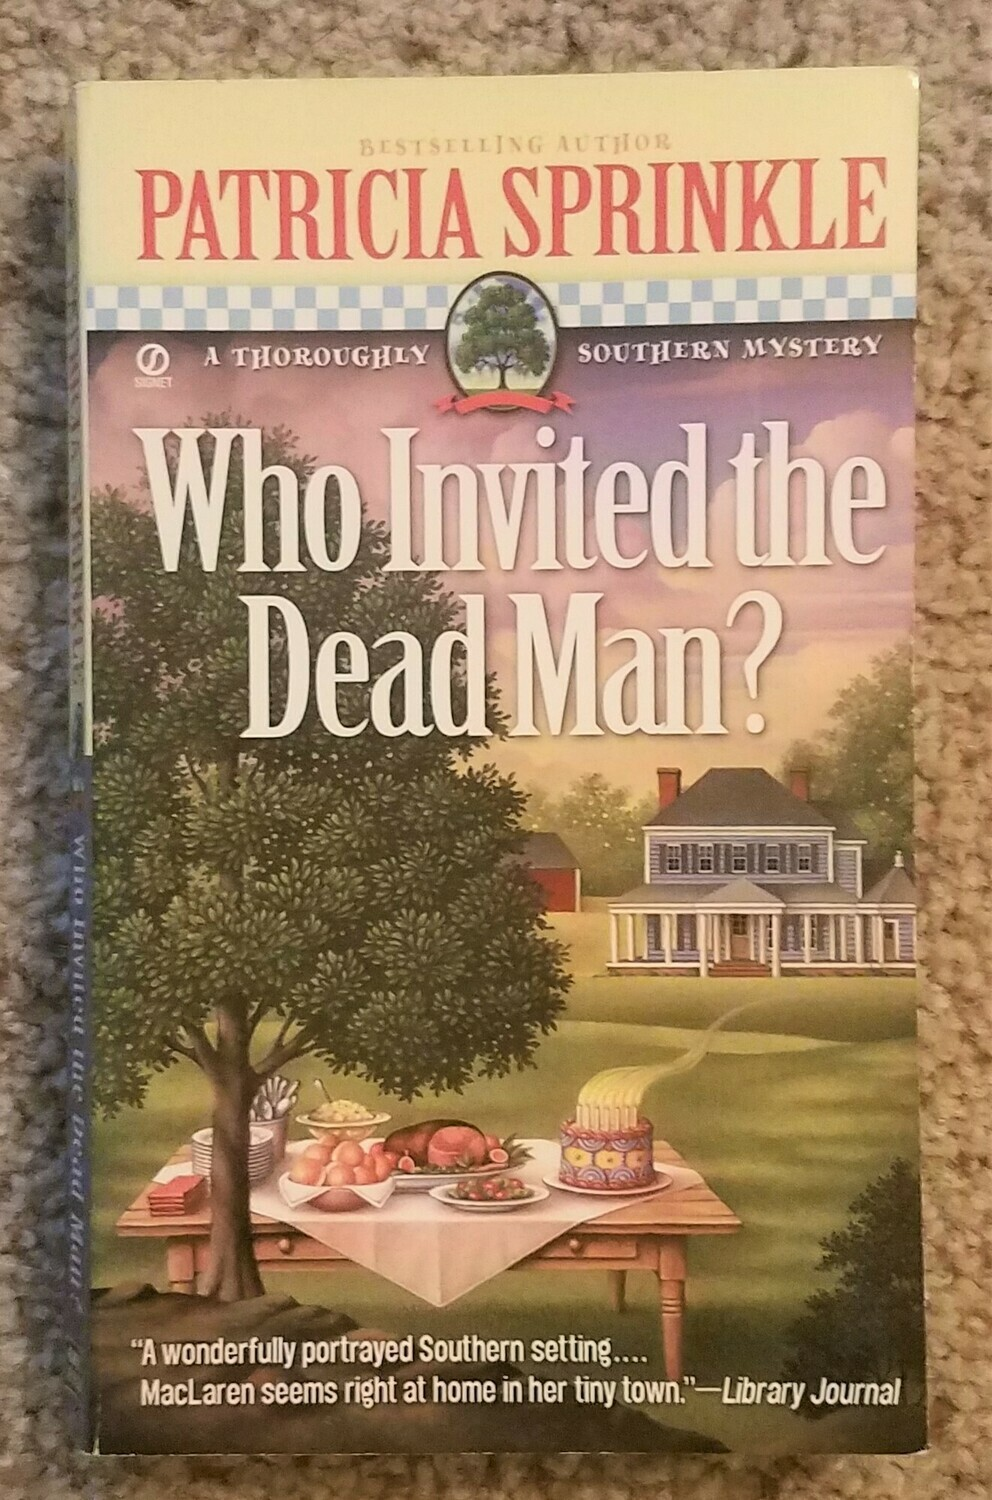 Who Invited the Dead Man? by Patricia Sprinkle